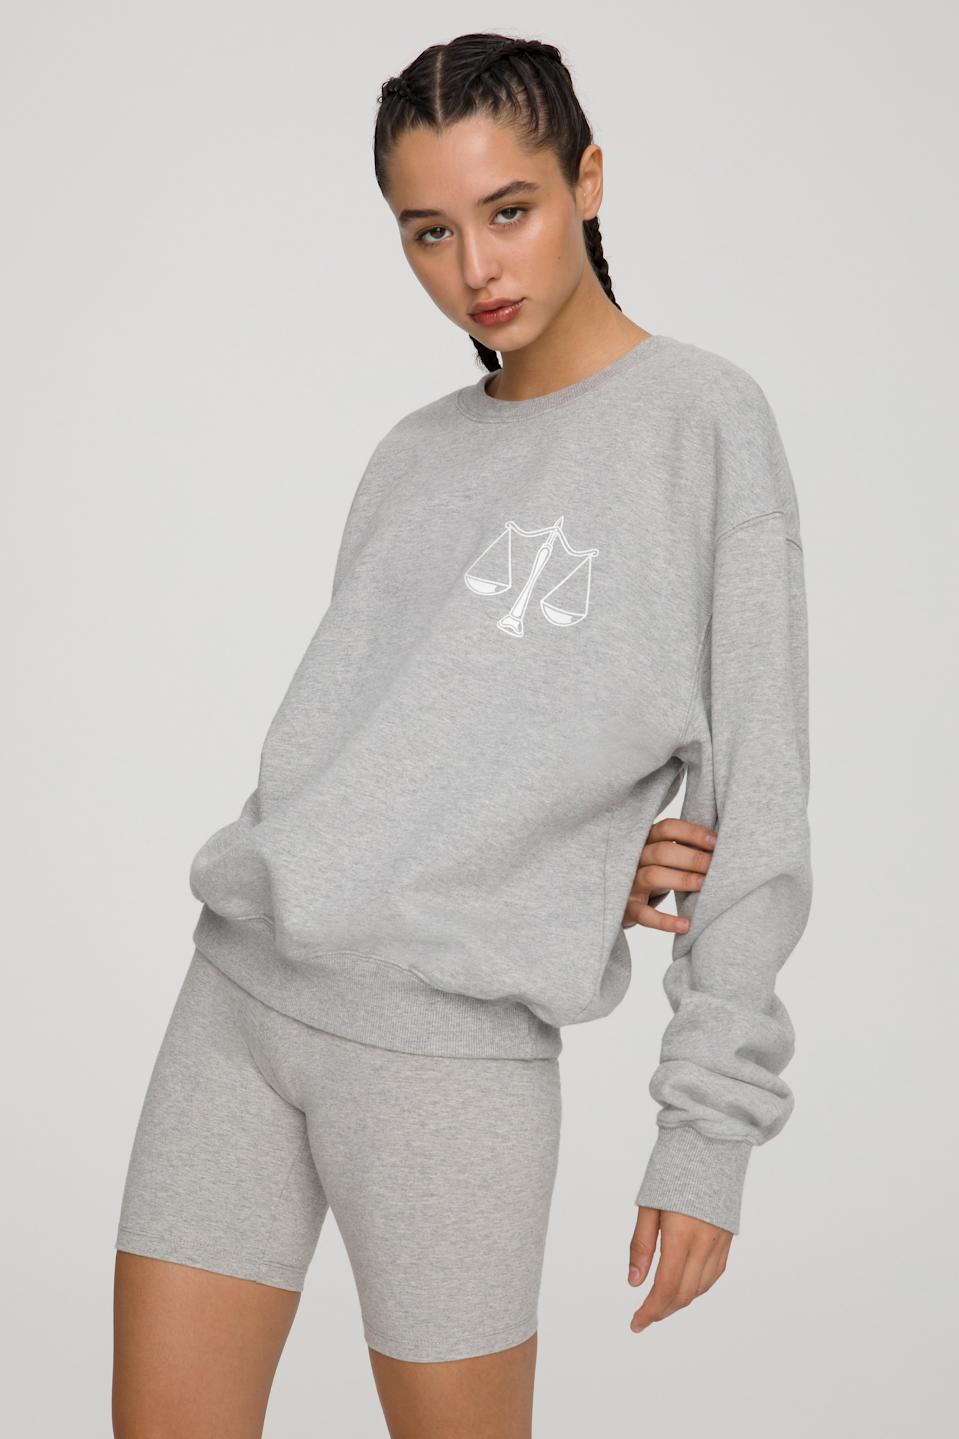 The Libra Zodiac Sweat Set by Good American. Sweatshirt, $124 and sweatpants, $105.